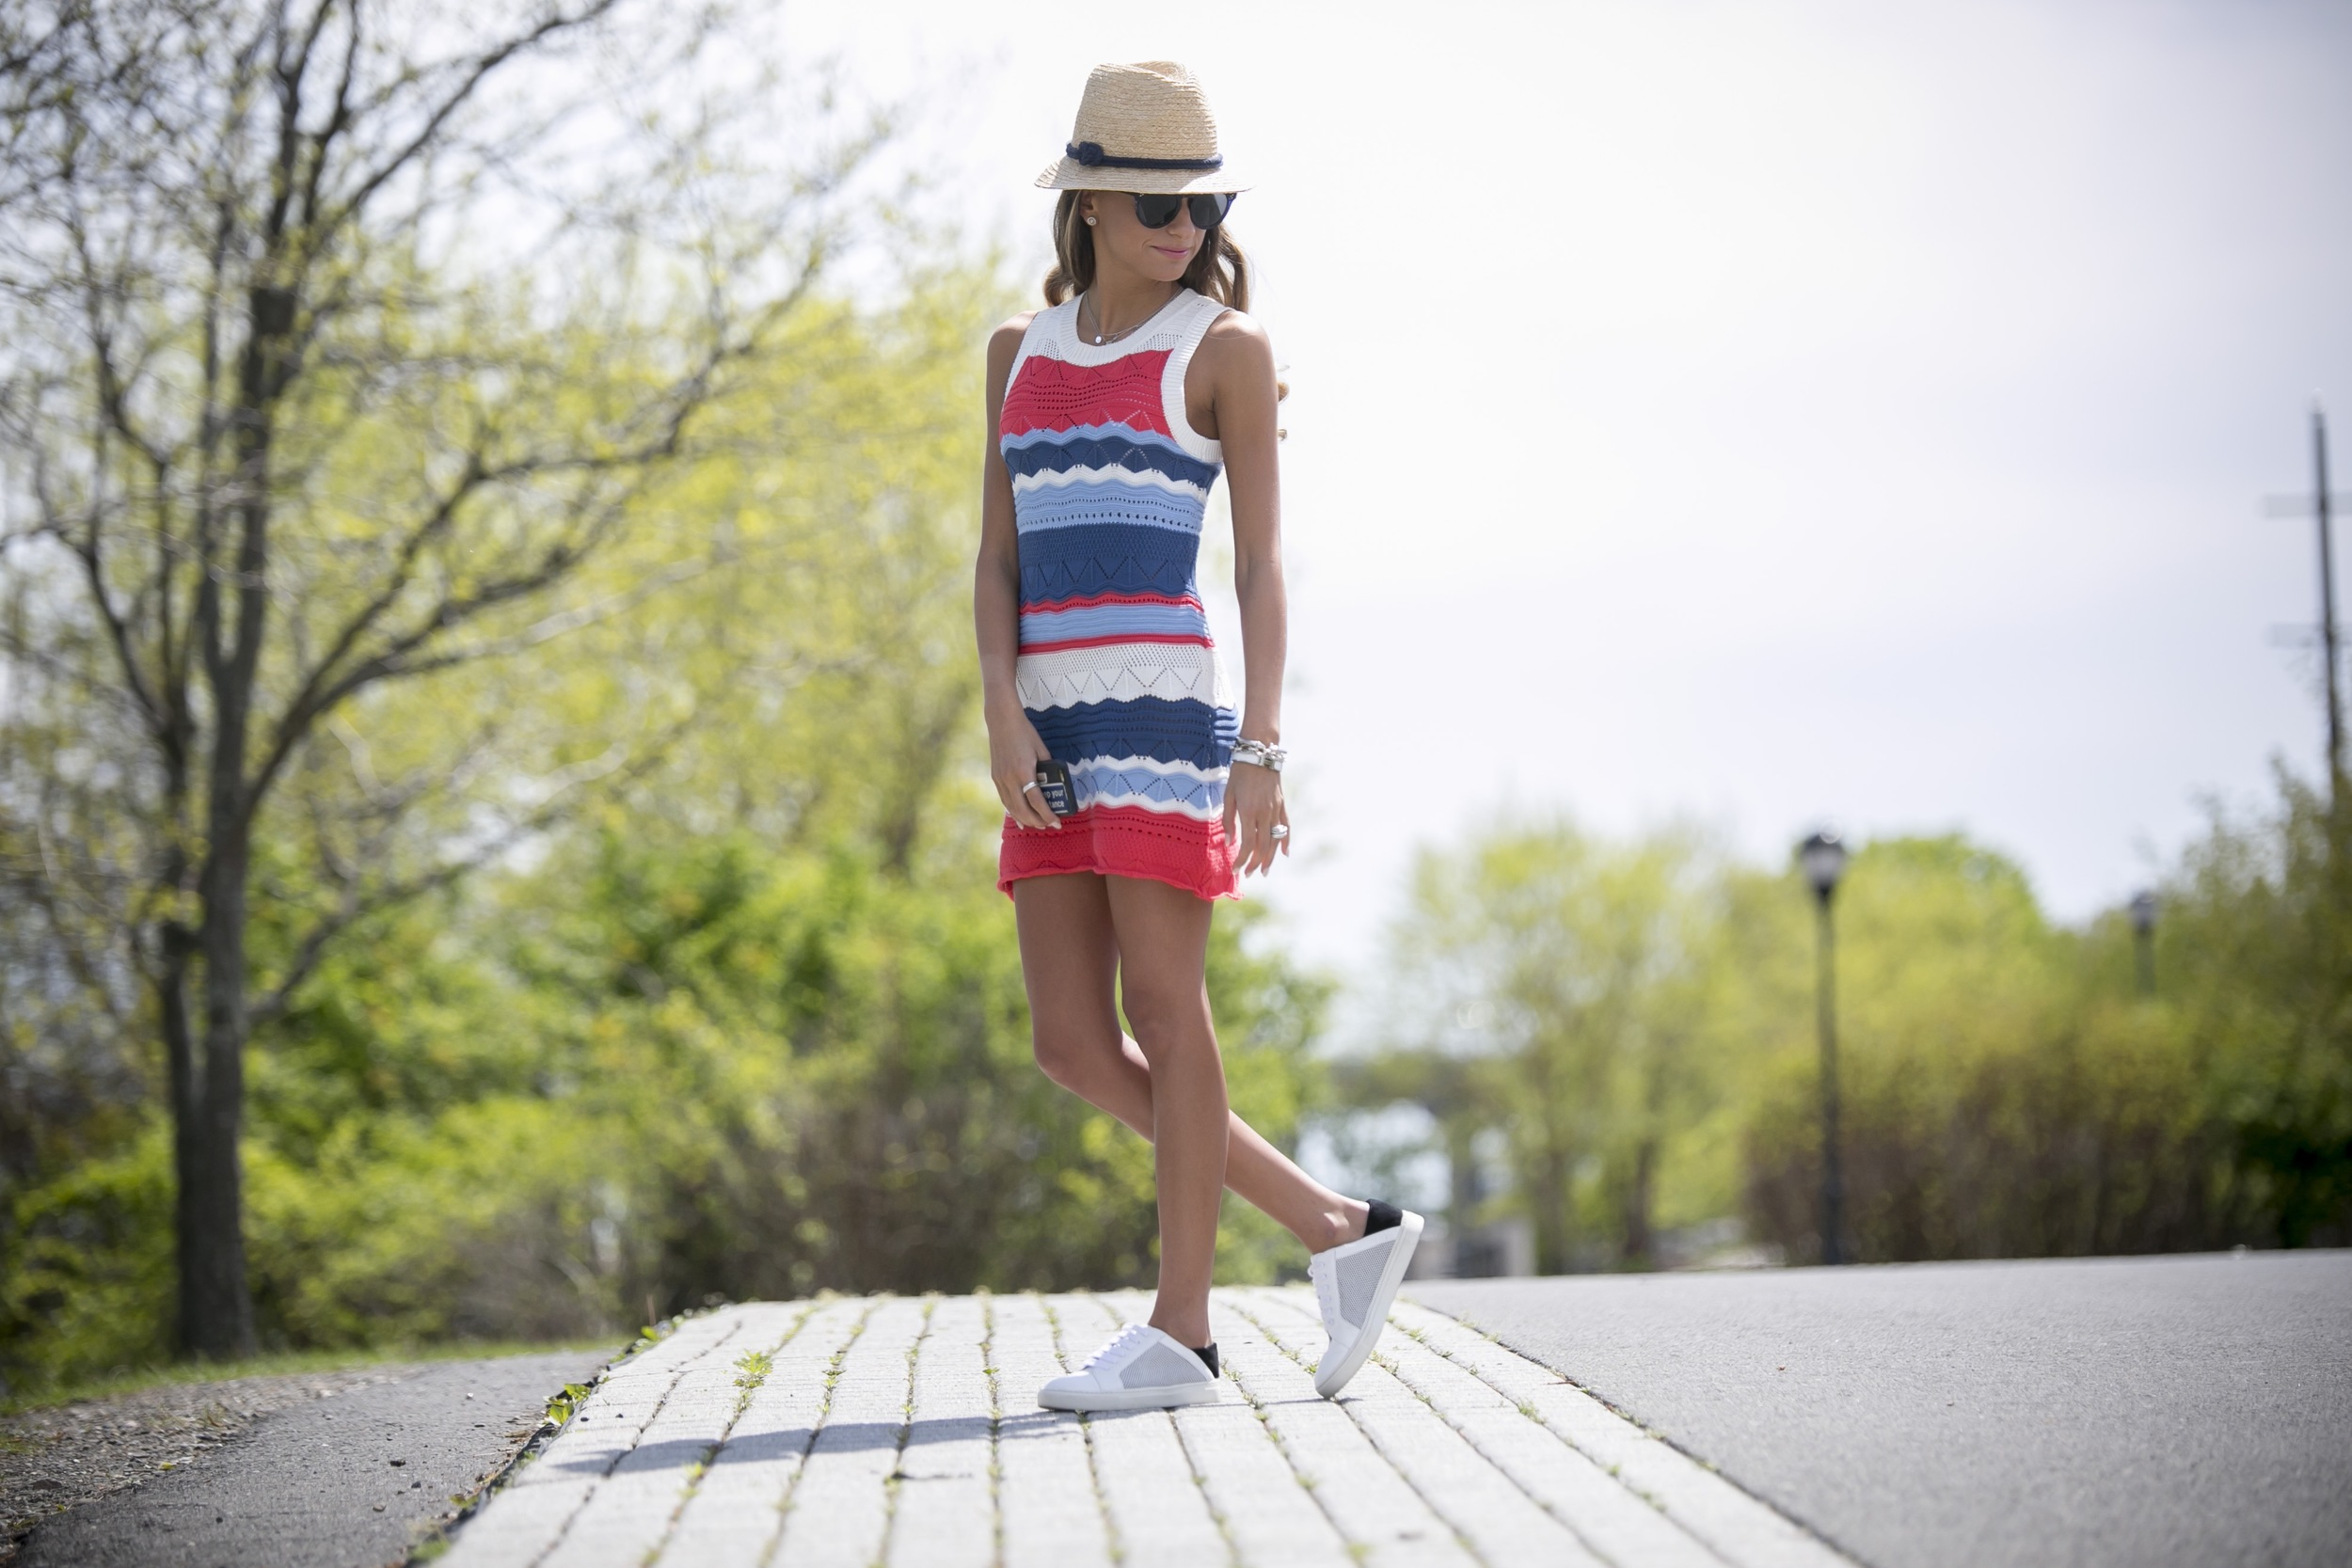 Knit mini dress worn with white sneakers and a straw hat